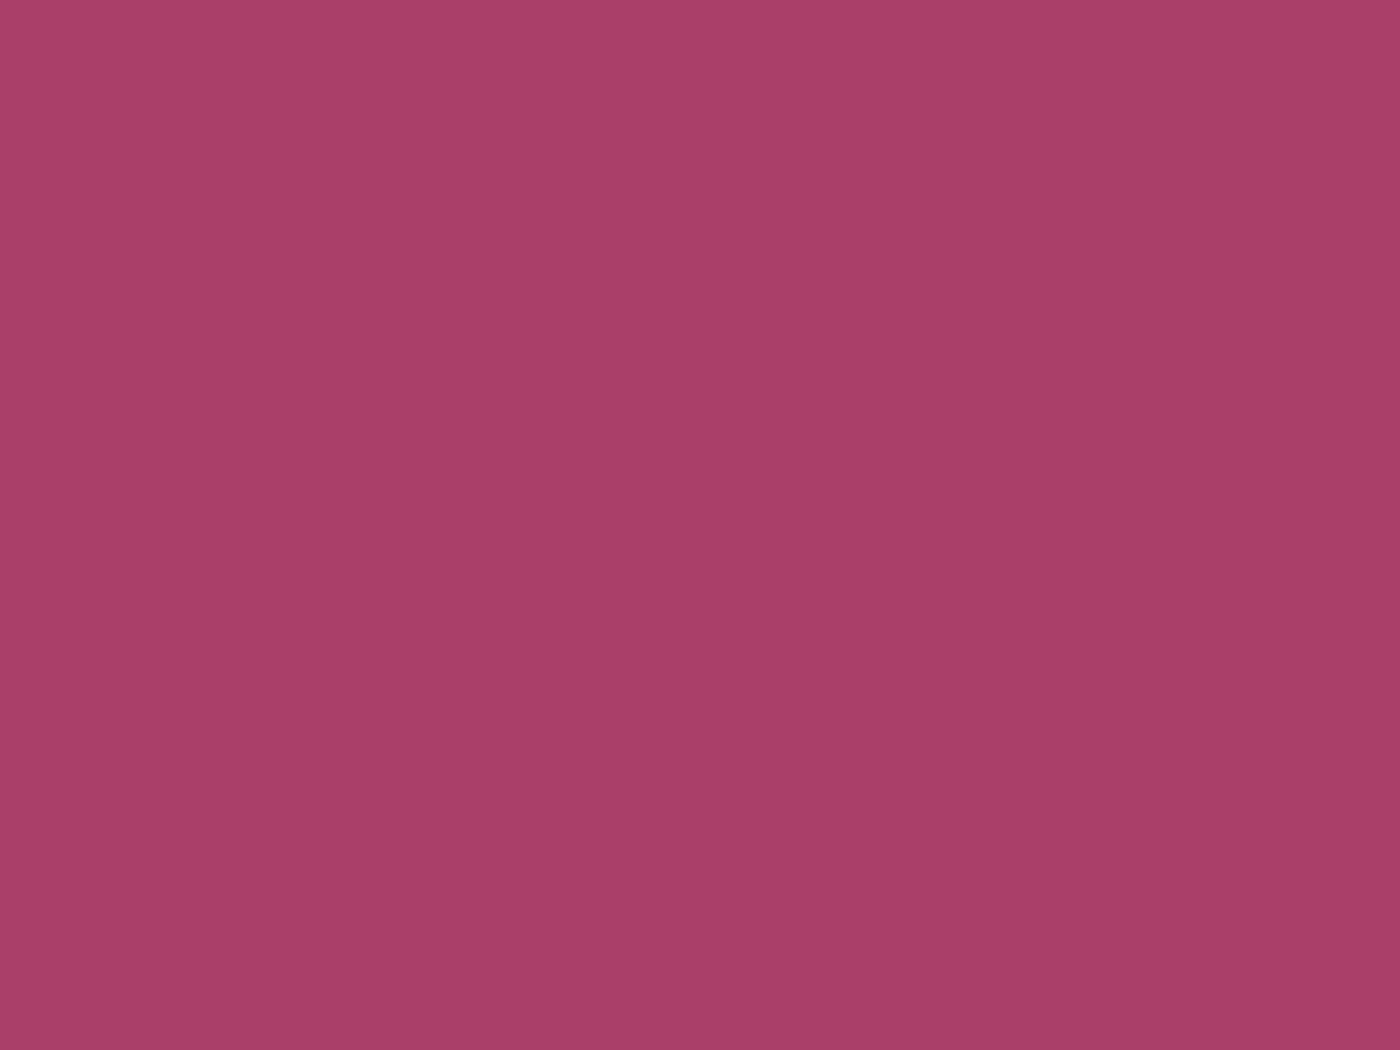 1400x1050 Medium Ruby Solid Color Background